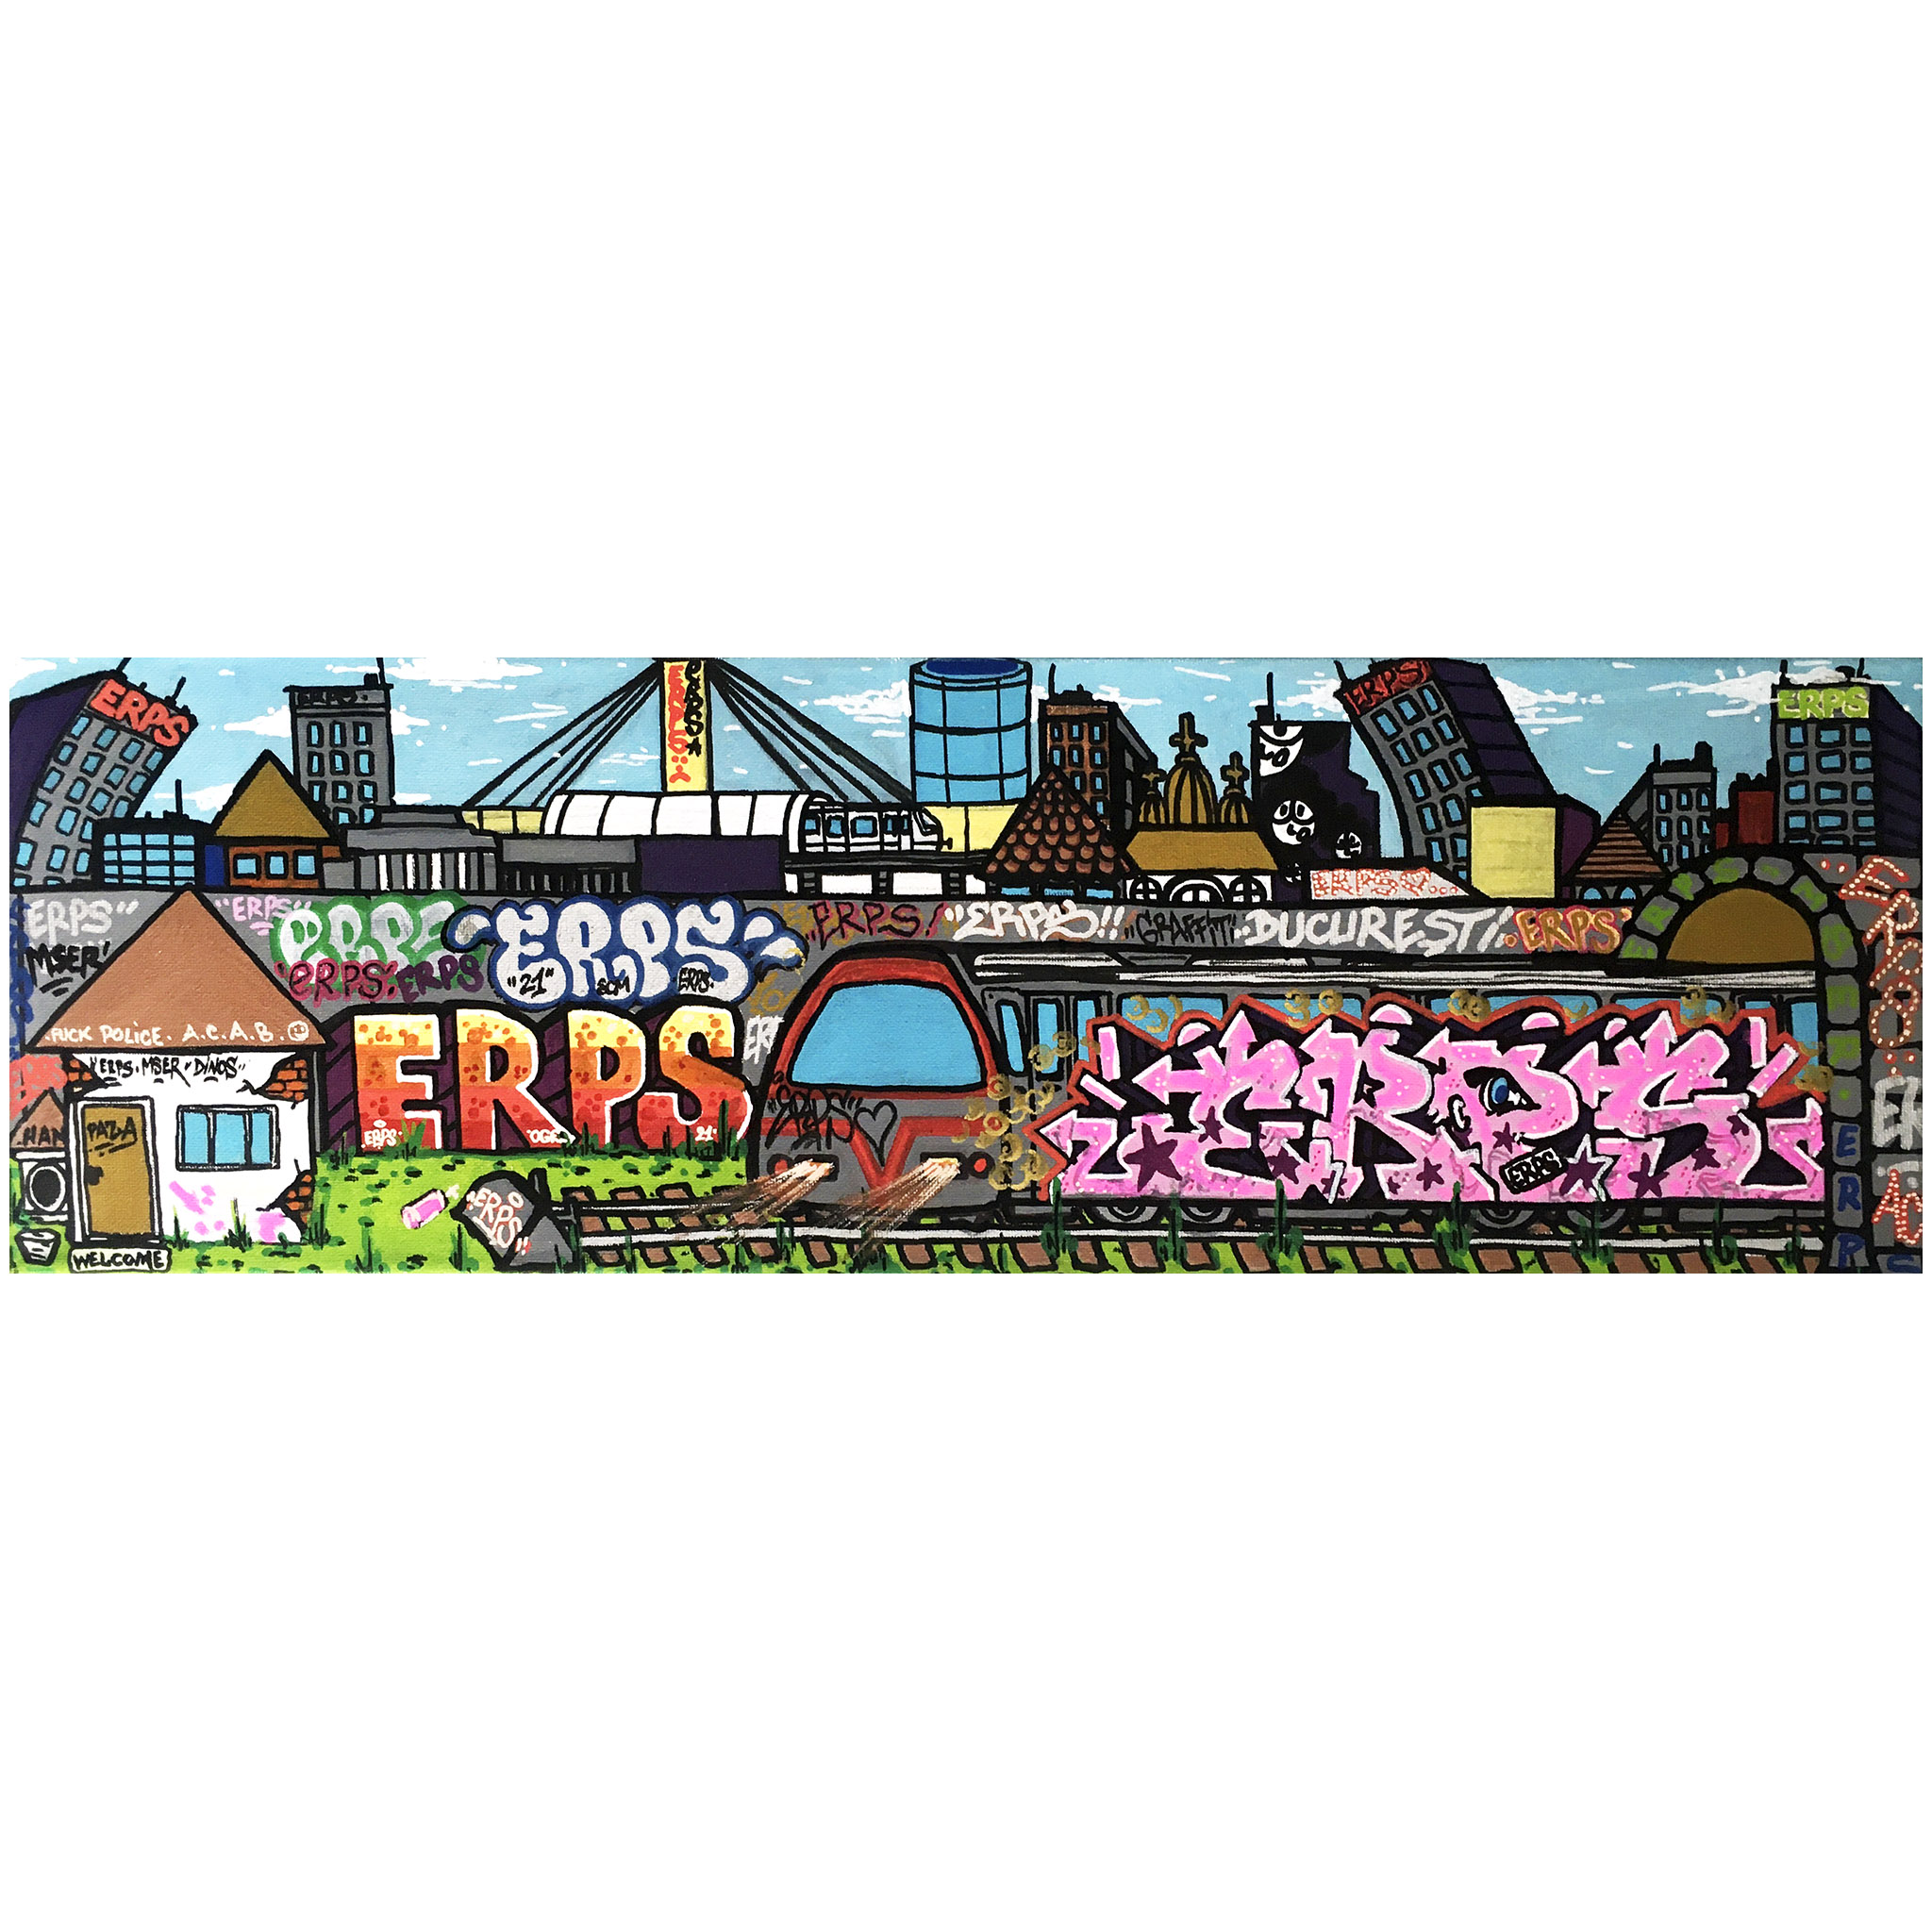 One of a kind artwork by graffiti legend ERPS painting on canvas